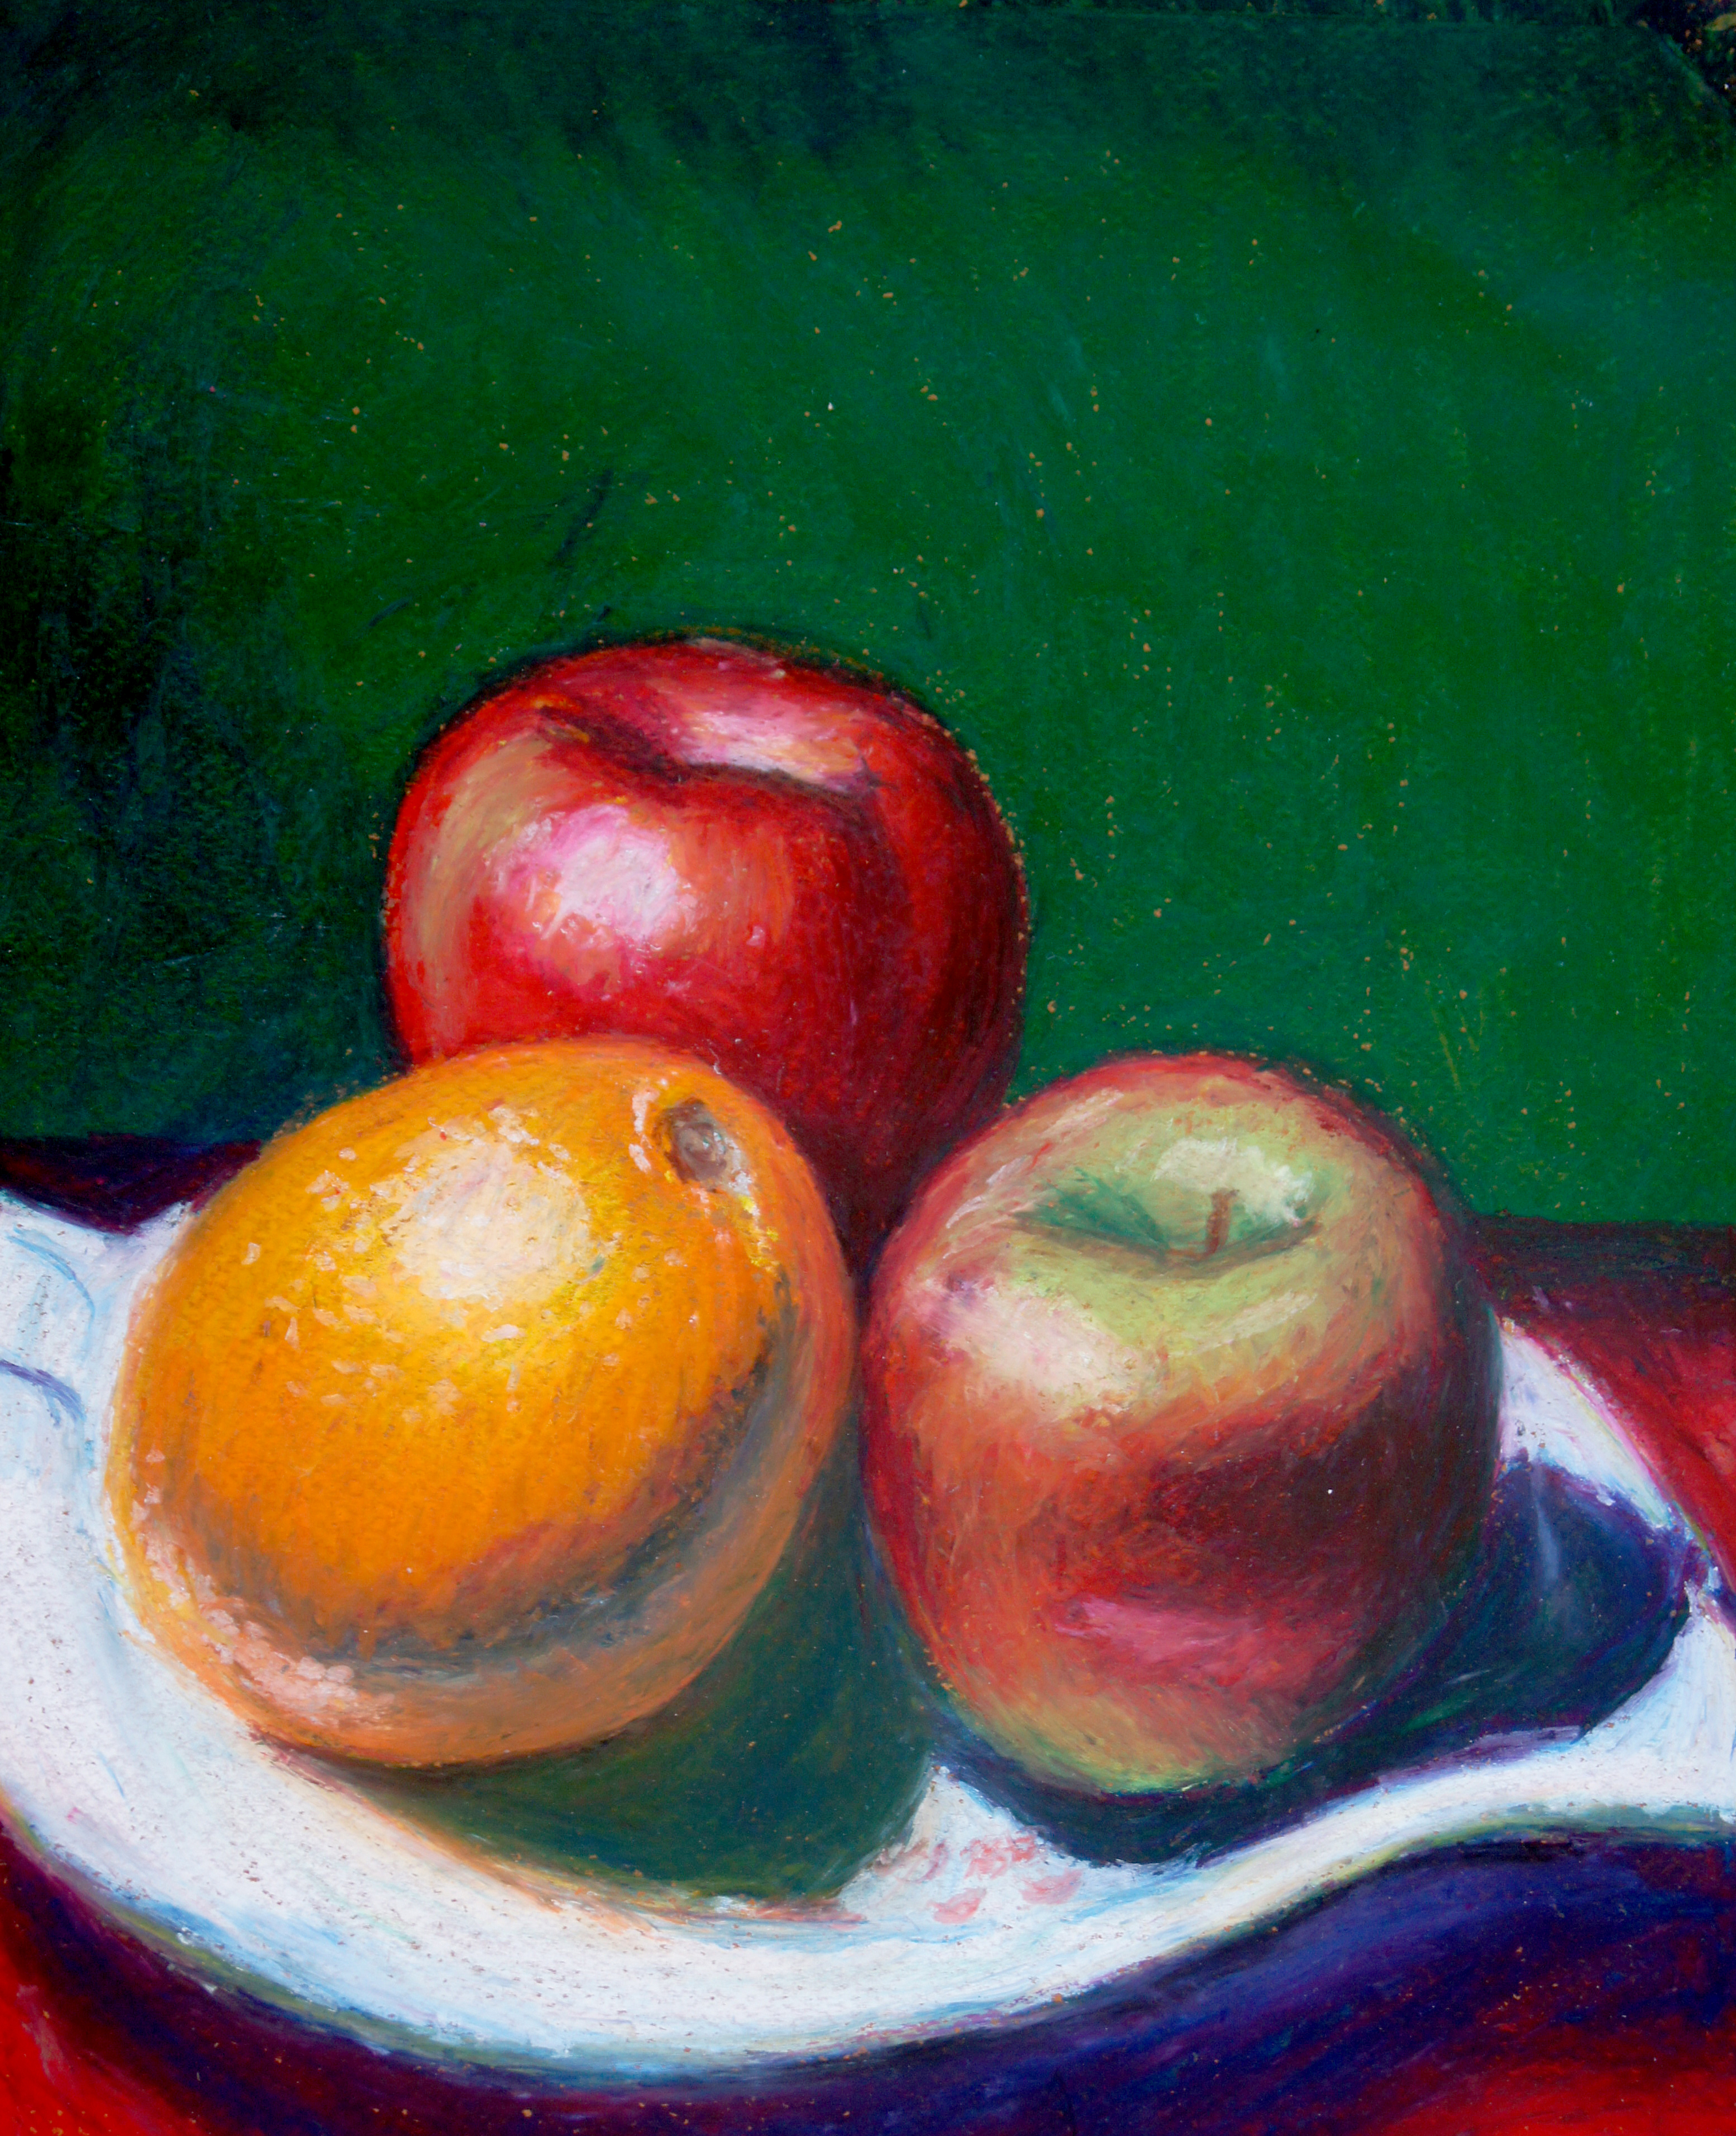 Still life with apples and an orange on a plate